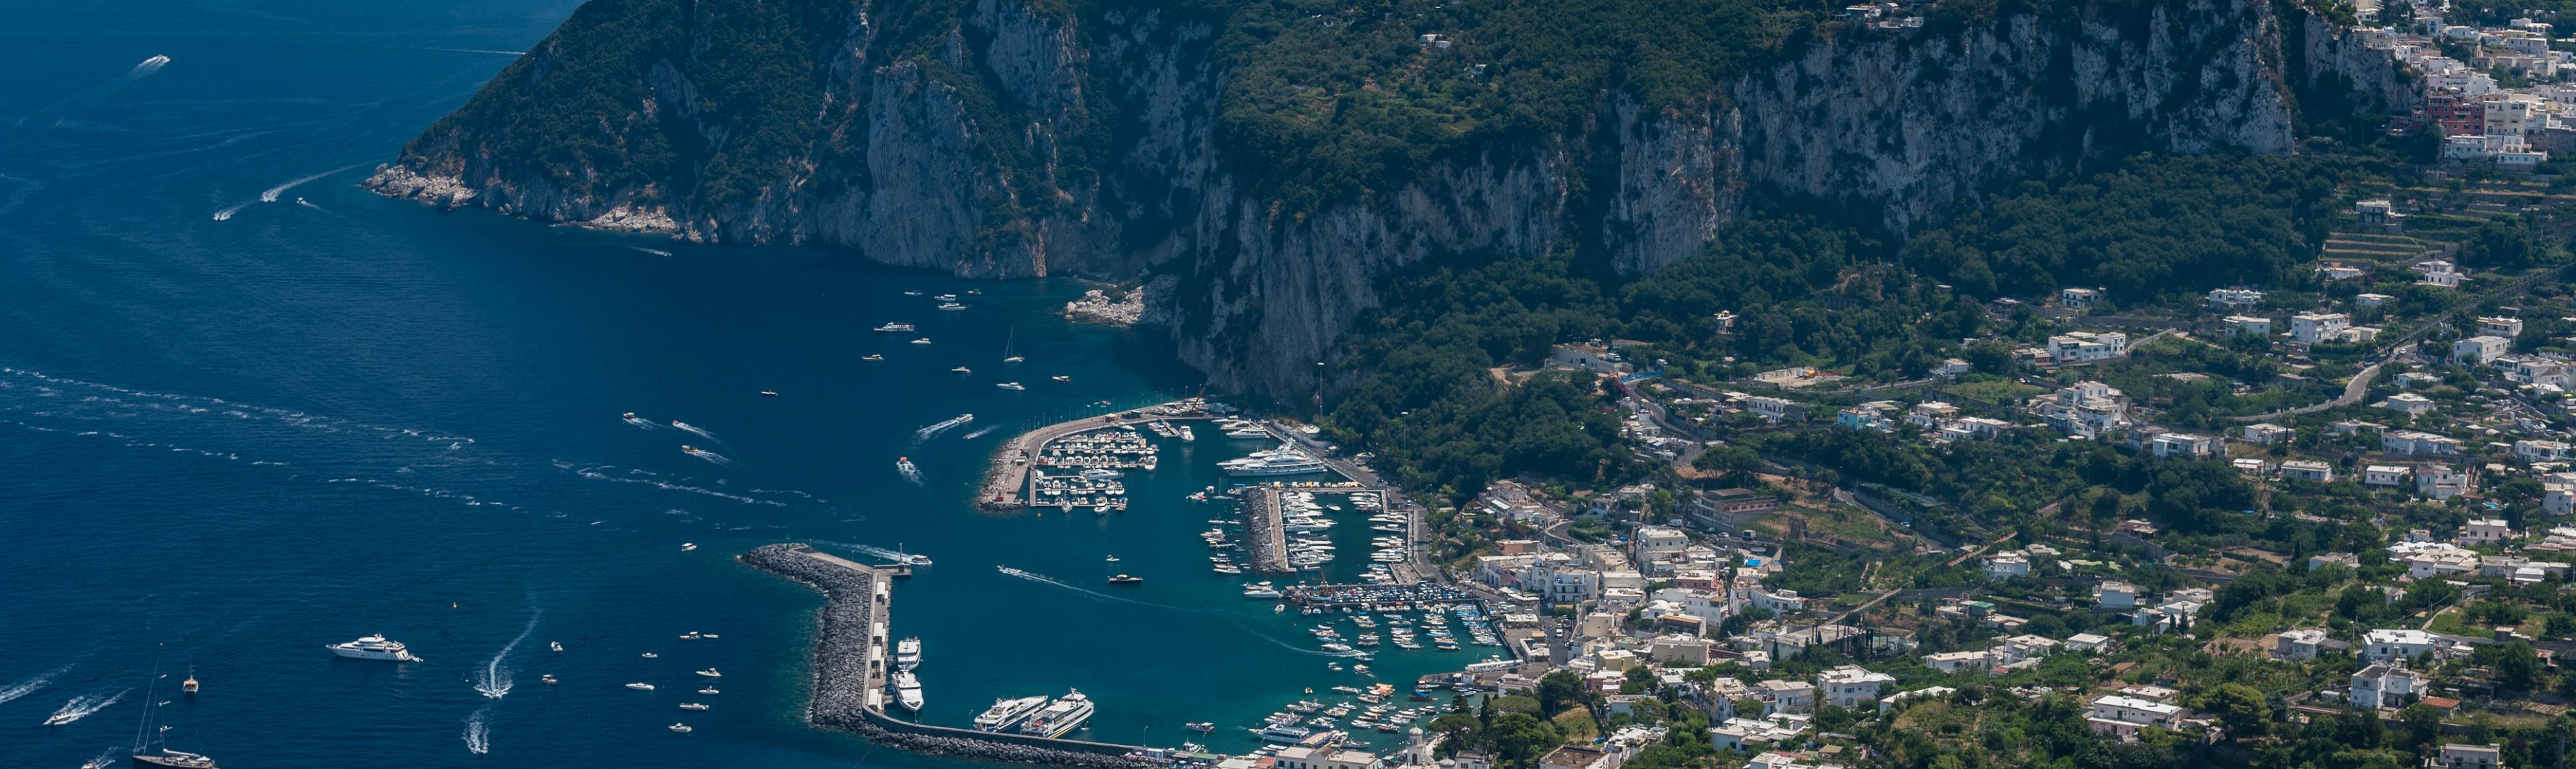 Stunning Bird's eye view of Capri and the surrounding sea